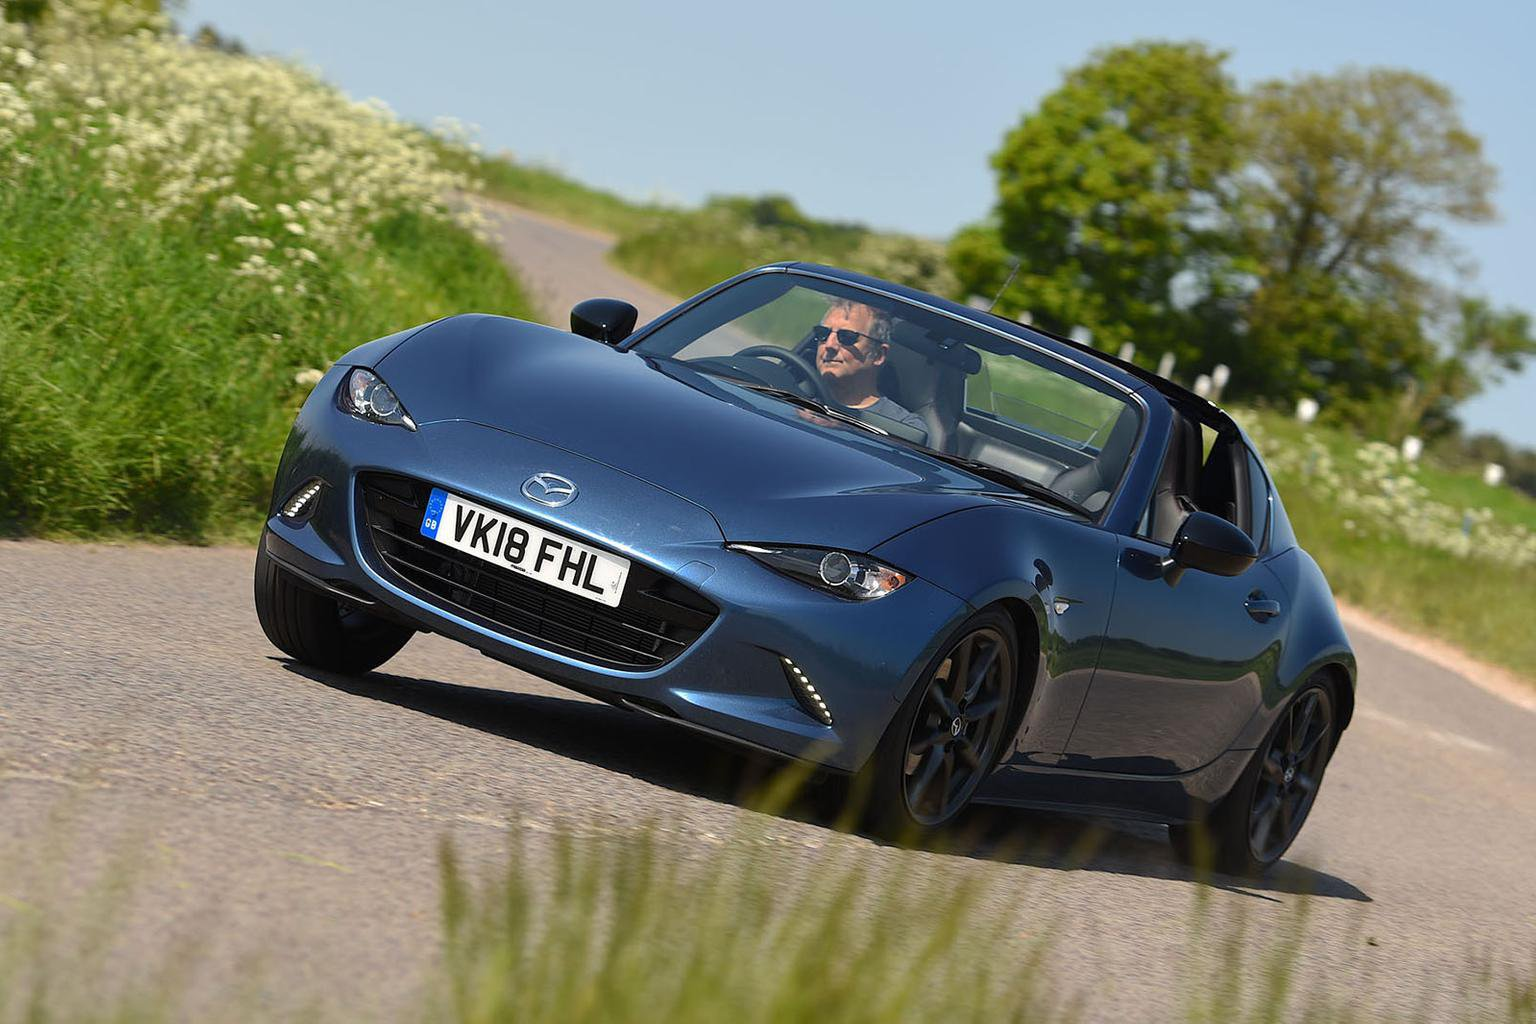 2018 Mazda MX-5 RF Sport Black review - price, specs and release date